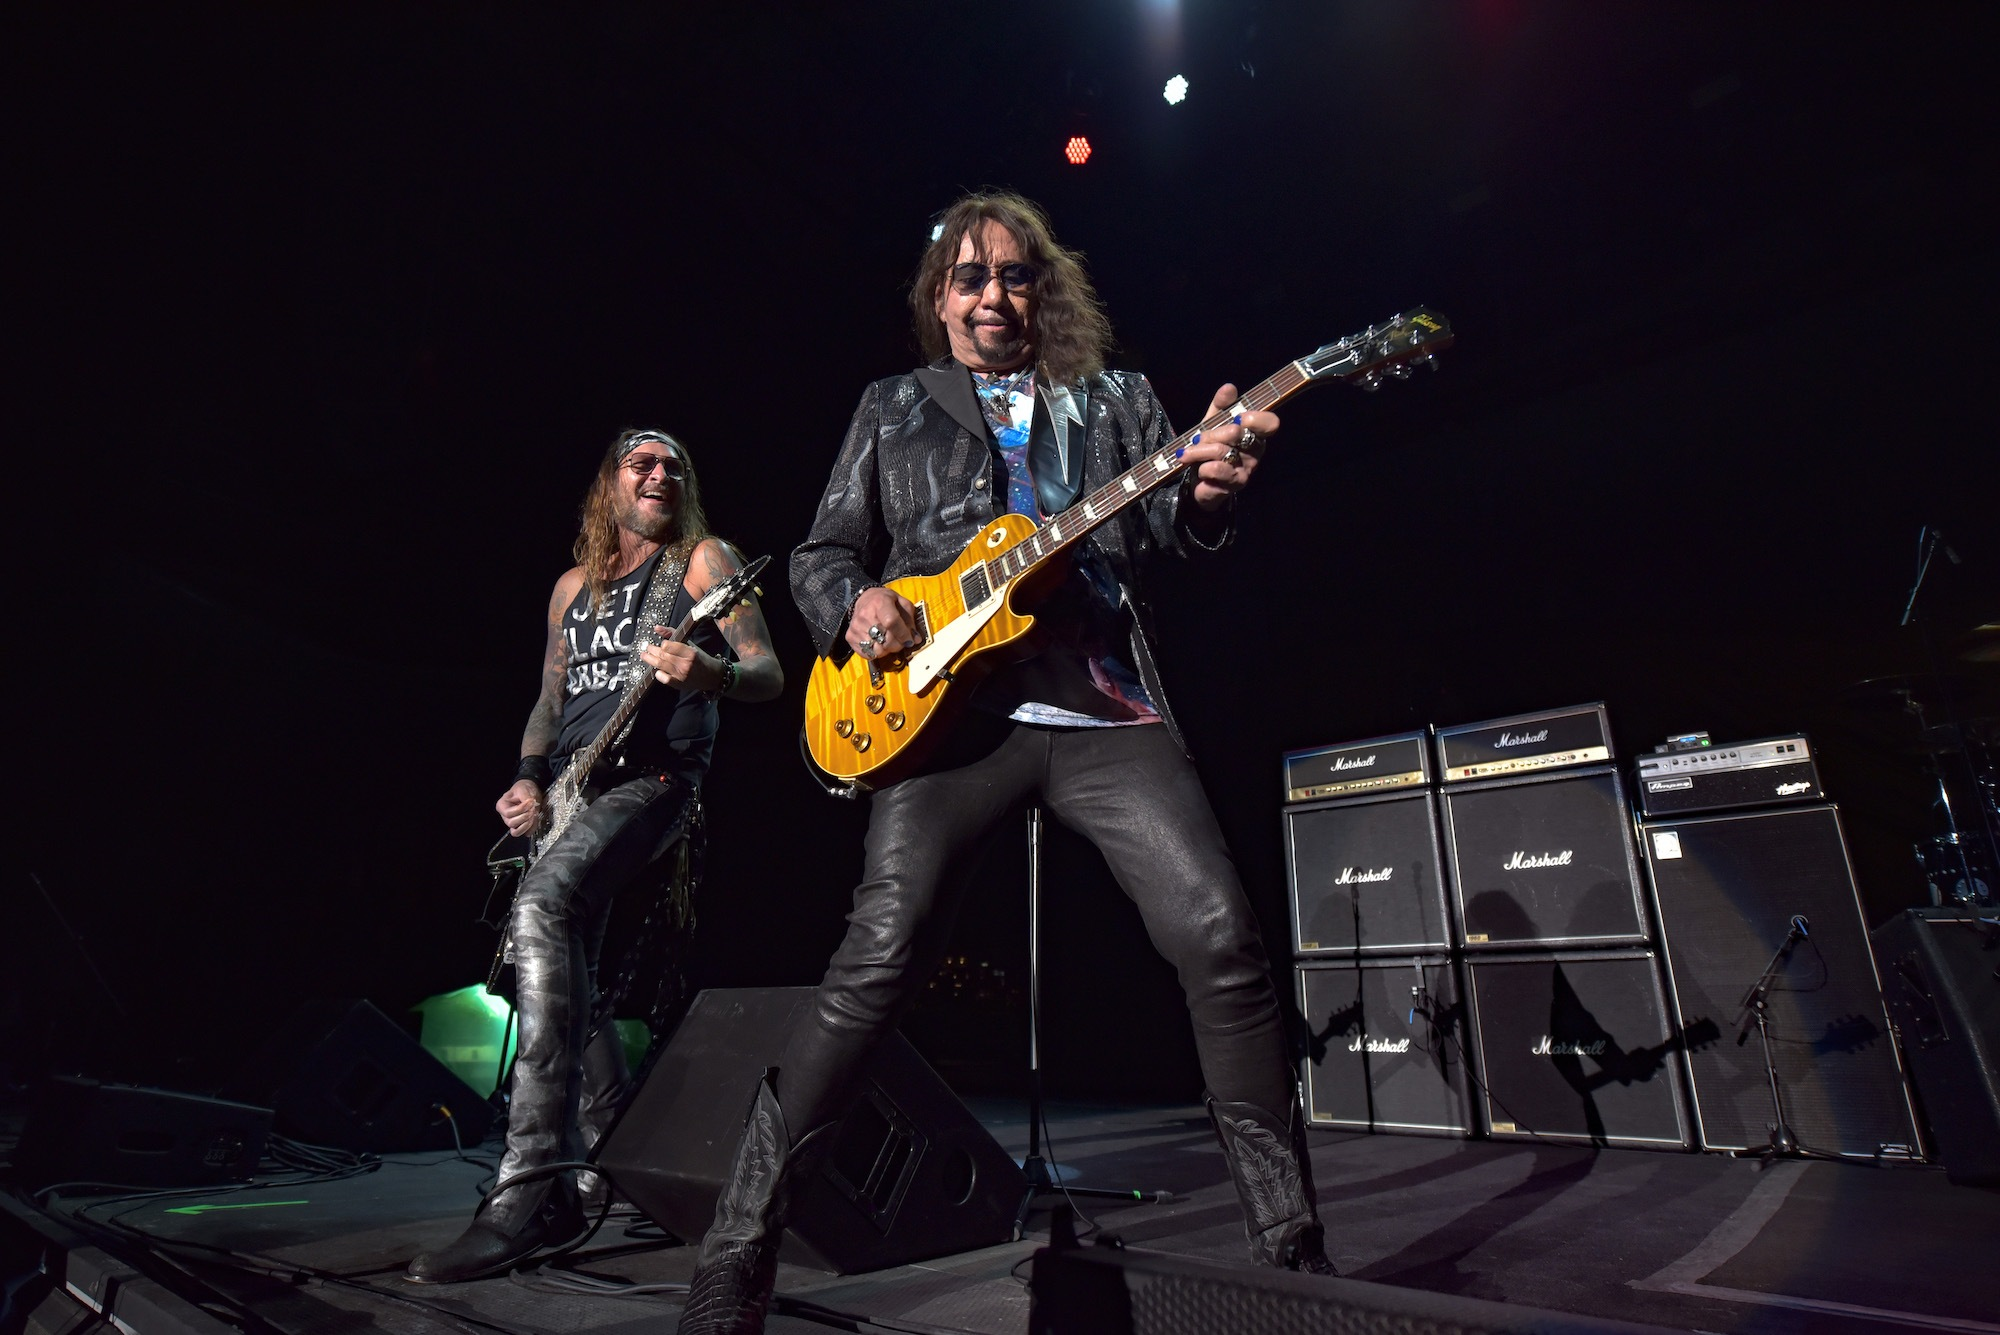 Ace Frehley Live at Huntington Bank Pavilion [GALLERY] 4